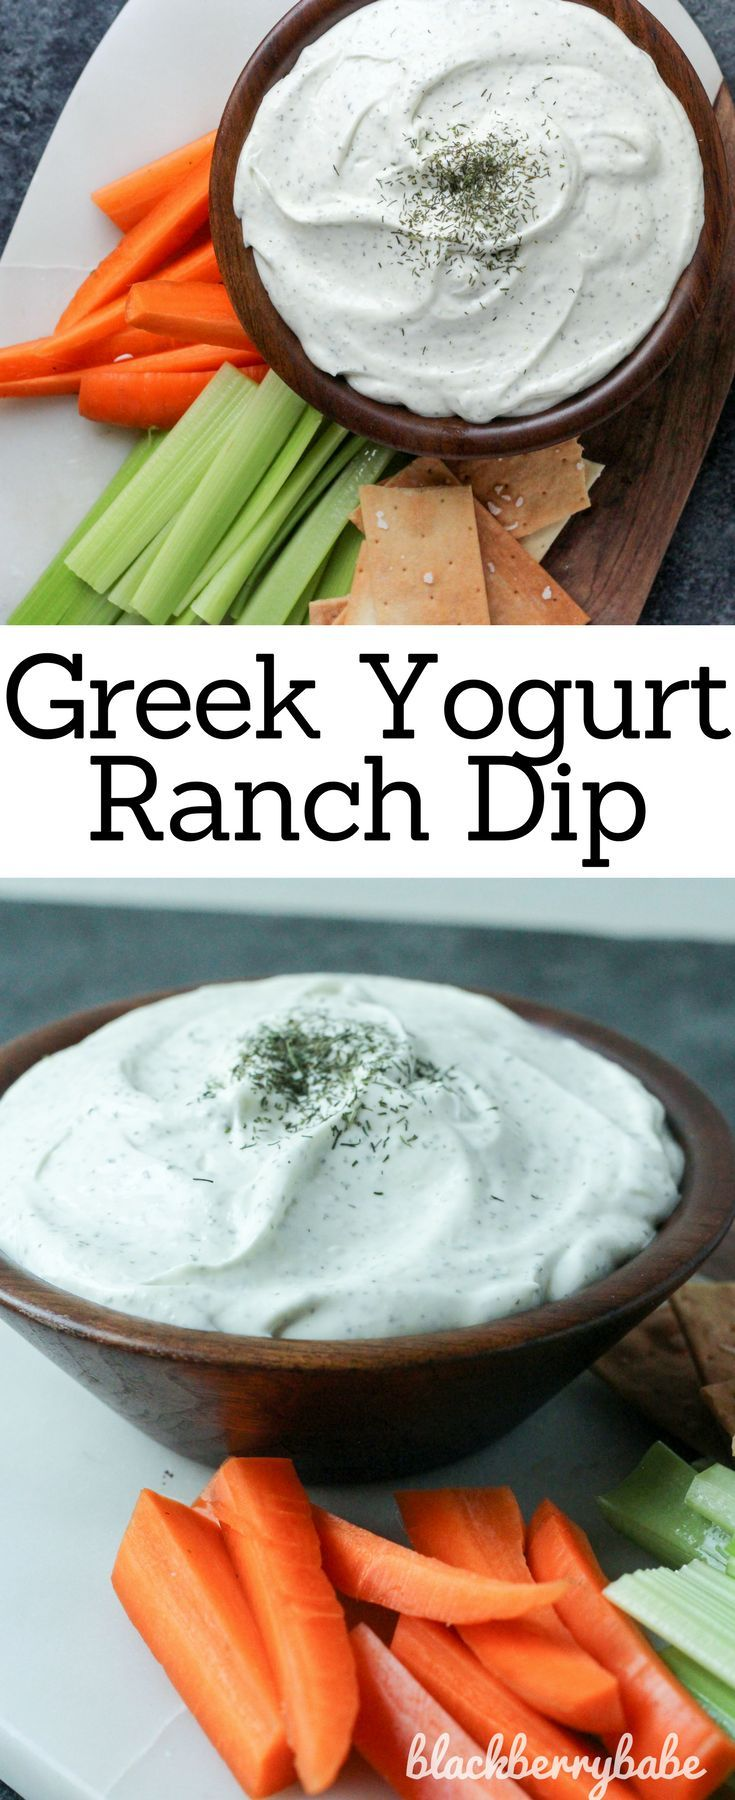 Greek Yogurt Ranch Dip Healthy Ranch Dip Light Ranch Dip Recipe Yogurt Ranch Dip Ea Greek Yogurt Recipes Healthy Appetizers Easy Easy Appetizer Recipes